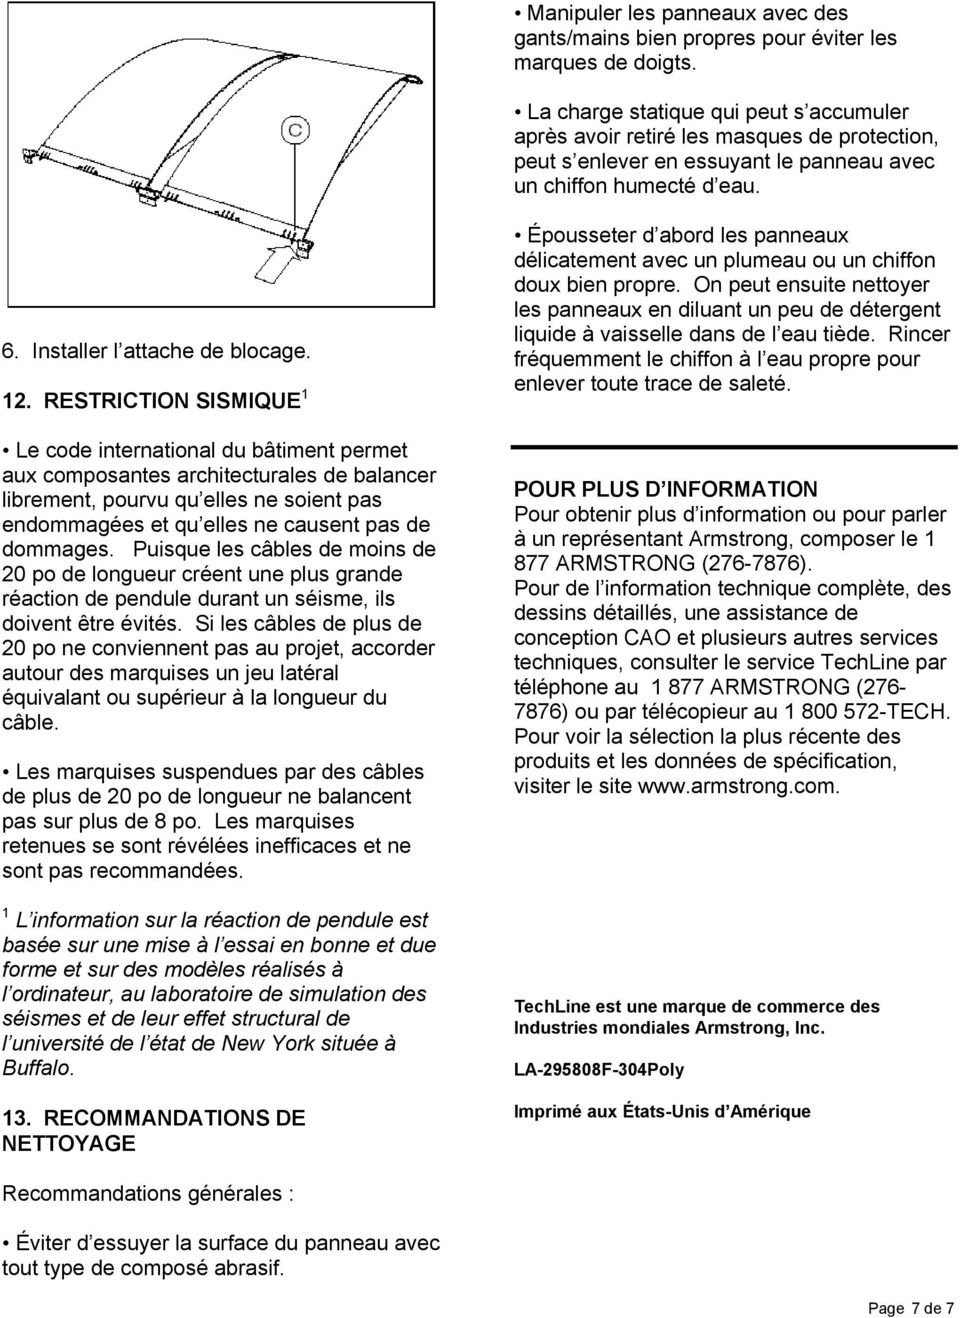 RESTRICTION SISMIQUE 1 Le code international du bâtiment permet aux composantes architecturales de balancer librement, pourvu qu elles ne soient pas endommagées et qu elles ne causent pas de dommages.